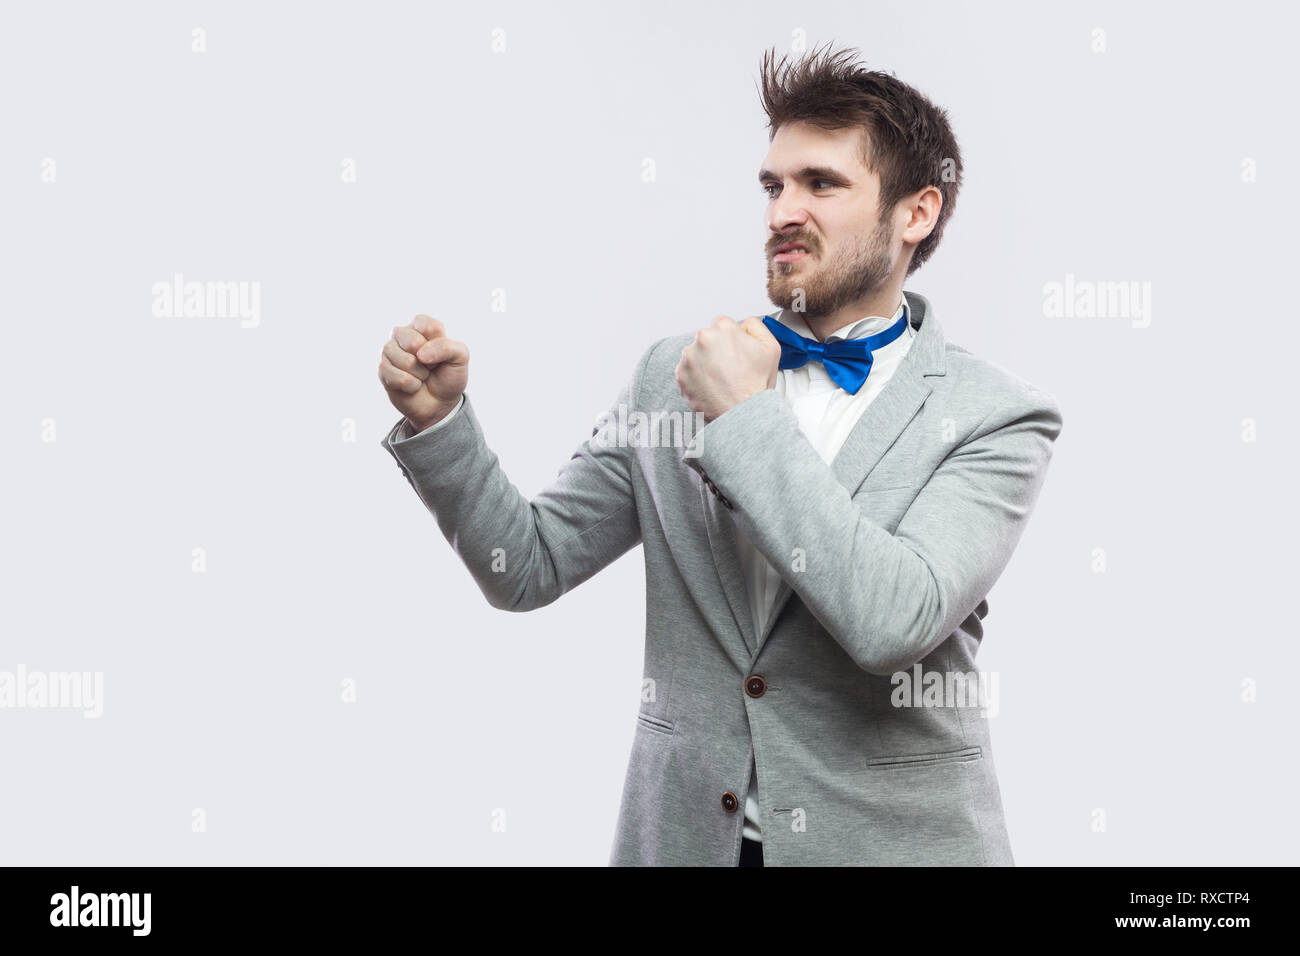 420b009287f3 Profile side view portrait of serious handsome bearded man in casual grey  suit and blue bow